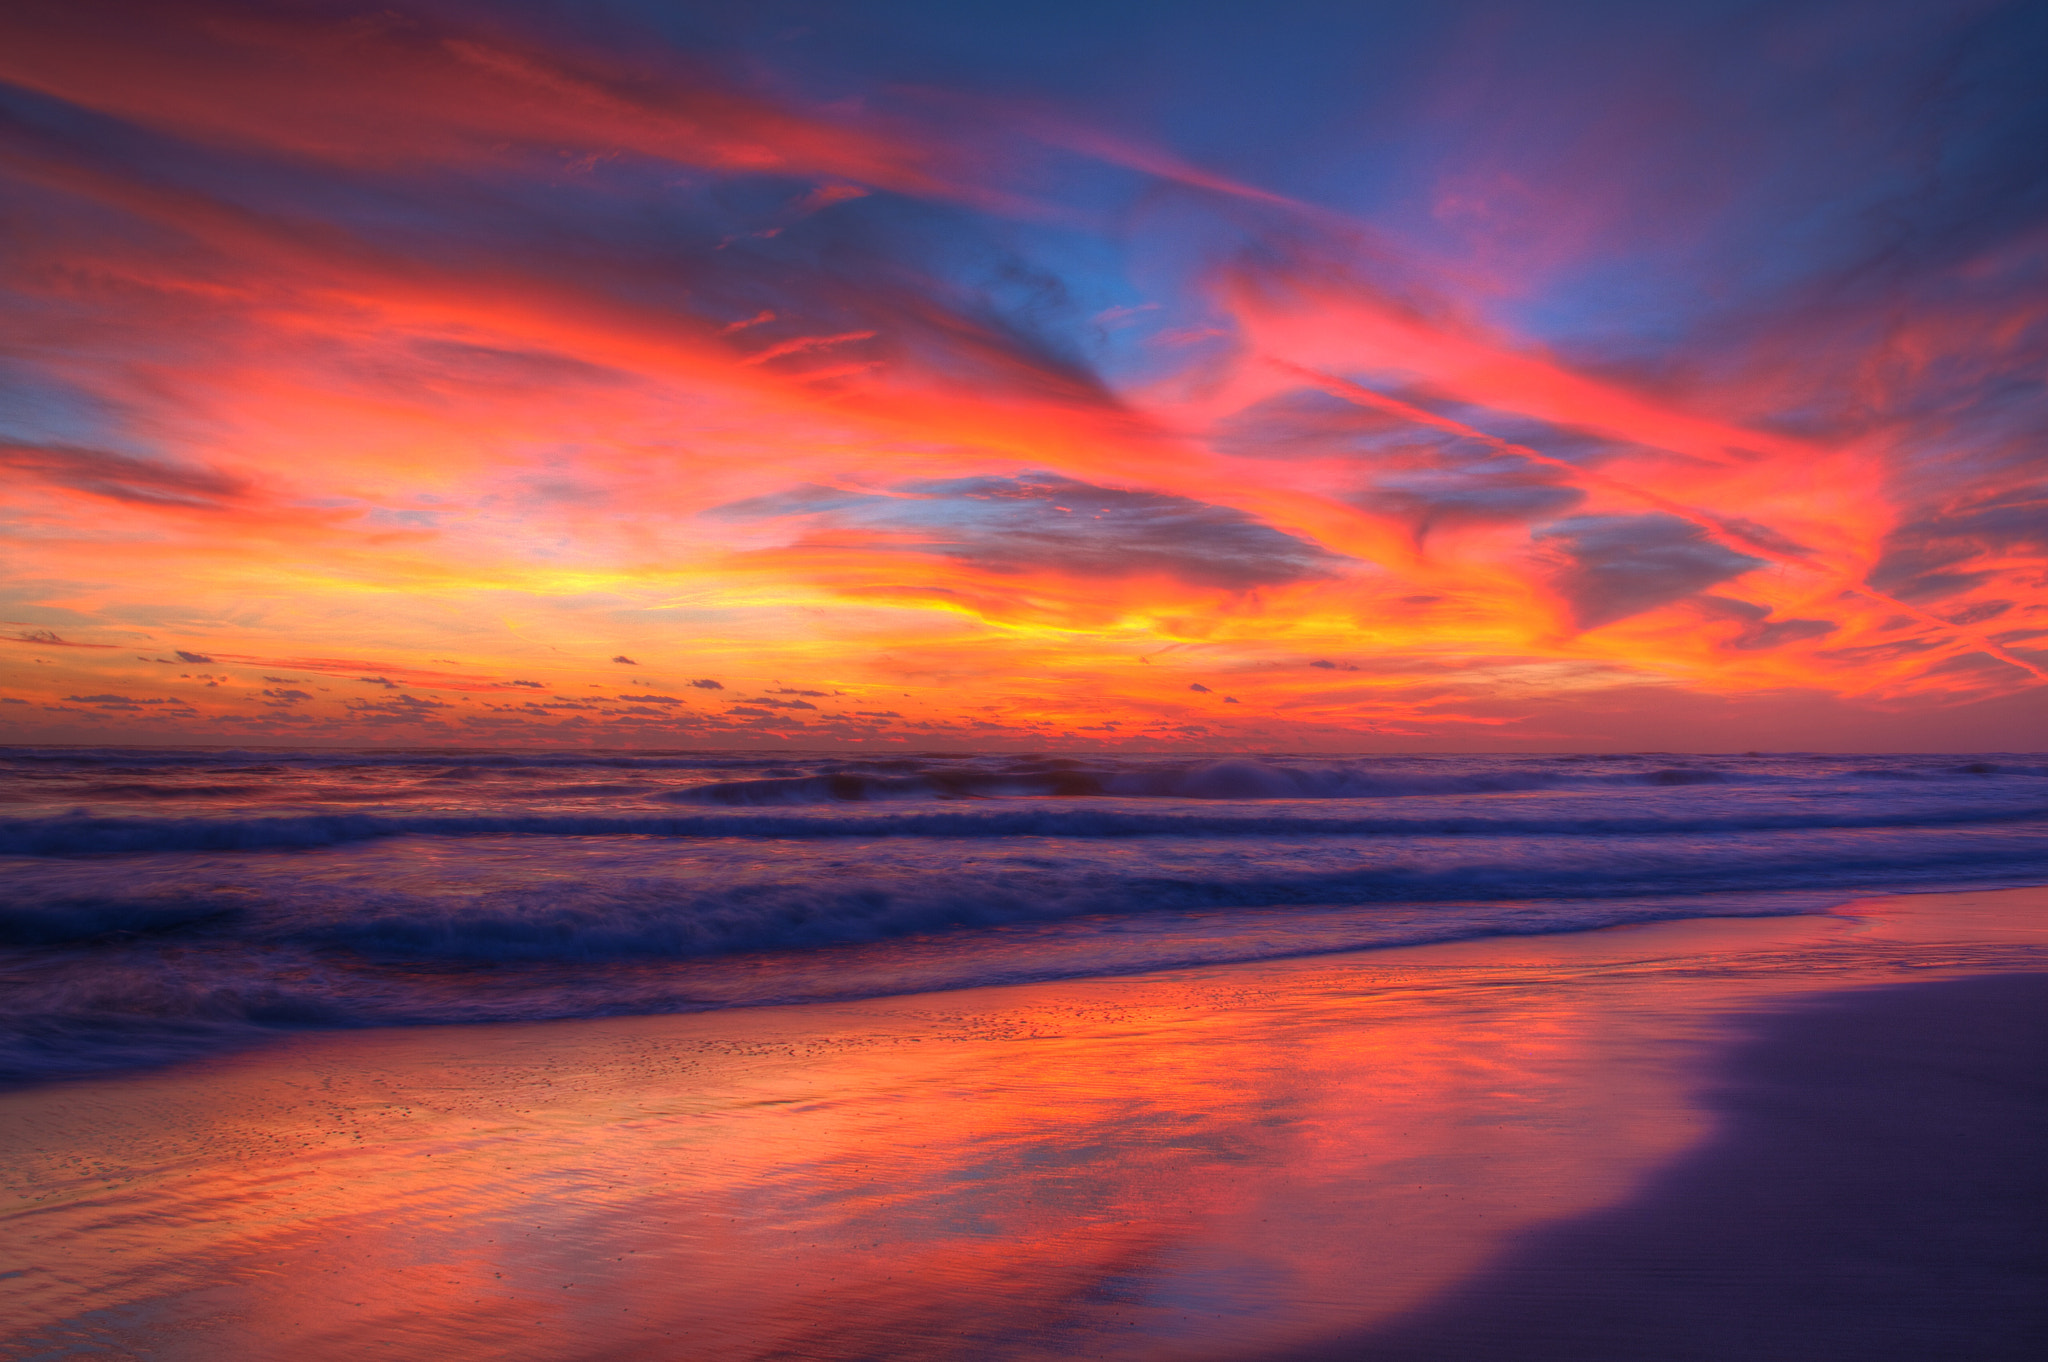 Photograph Seagrove Sunset by Logan Brown on 500px